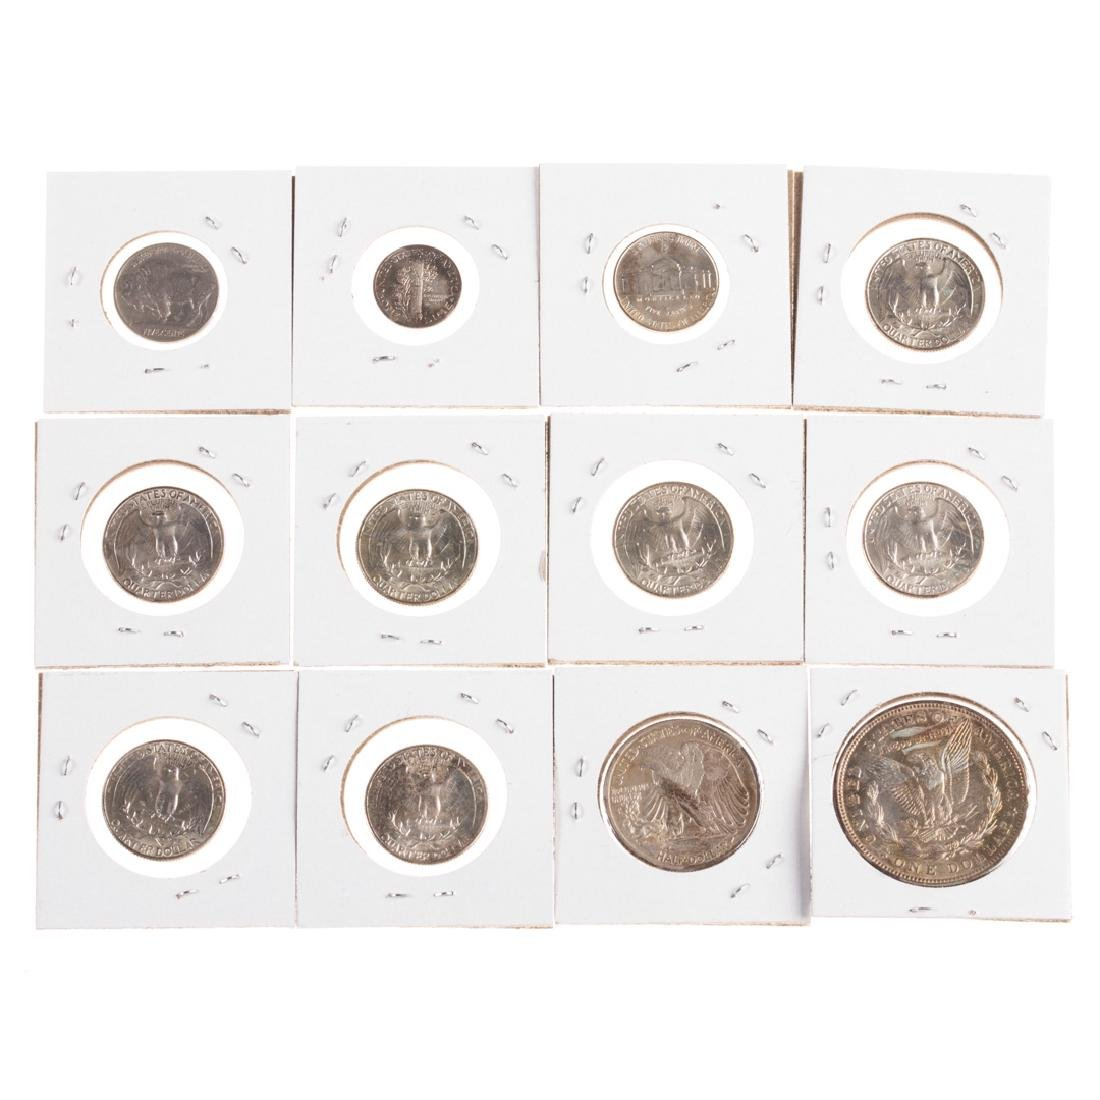 [US] Nice Group of Hi-Grade Mid-20th Century Coins - 4